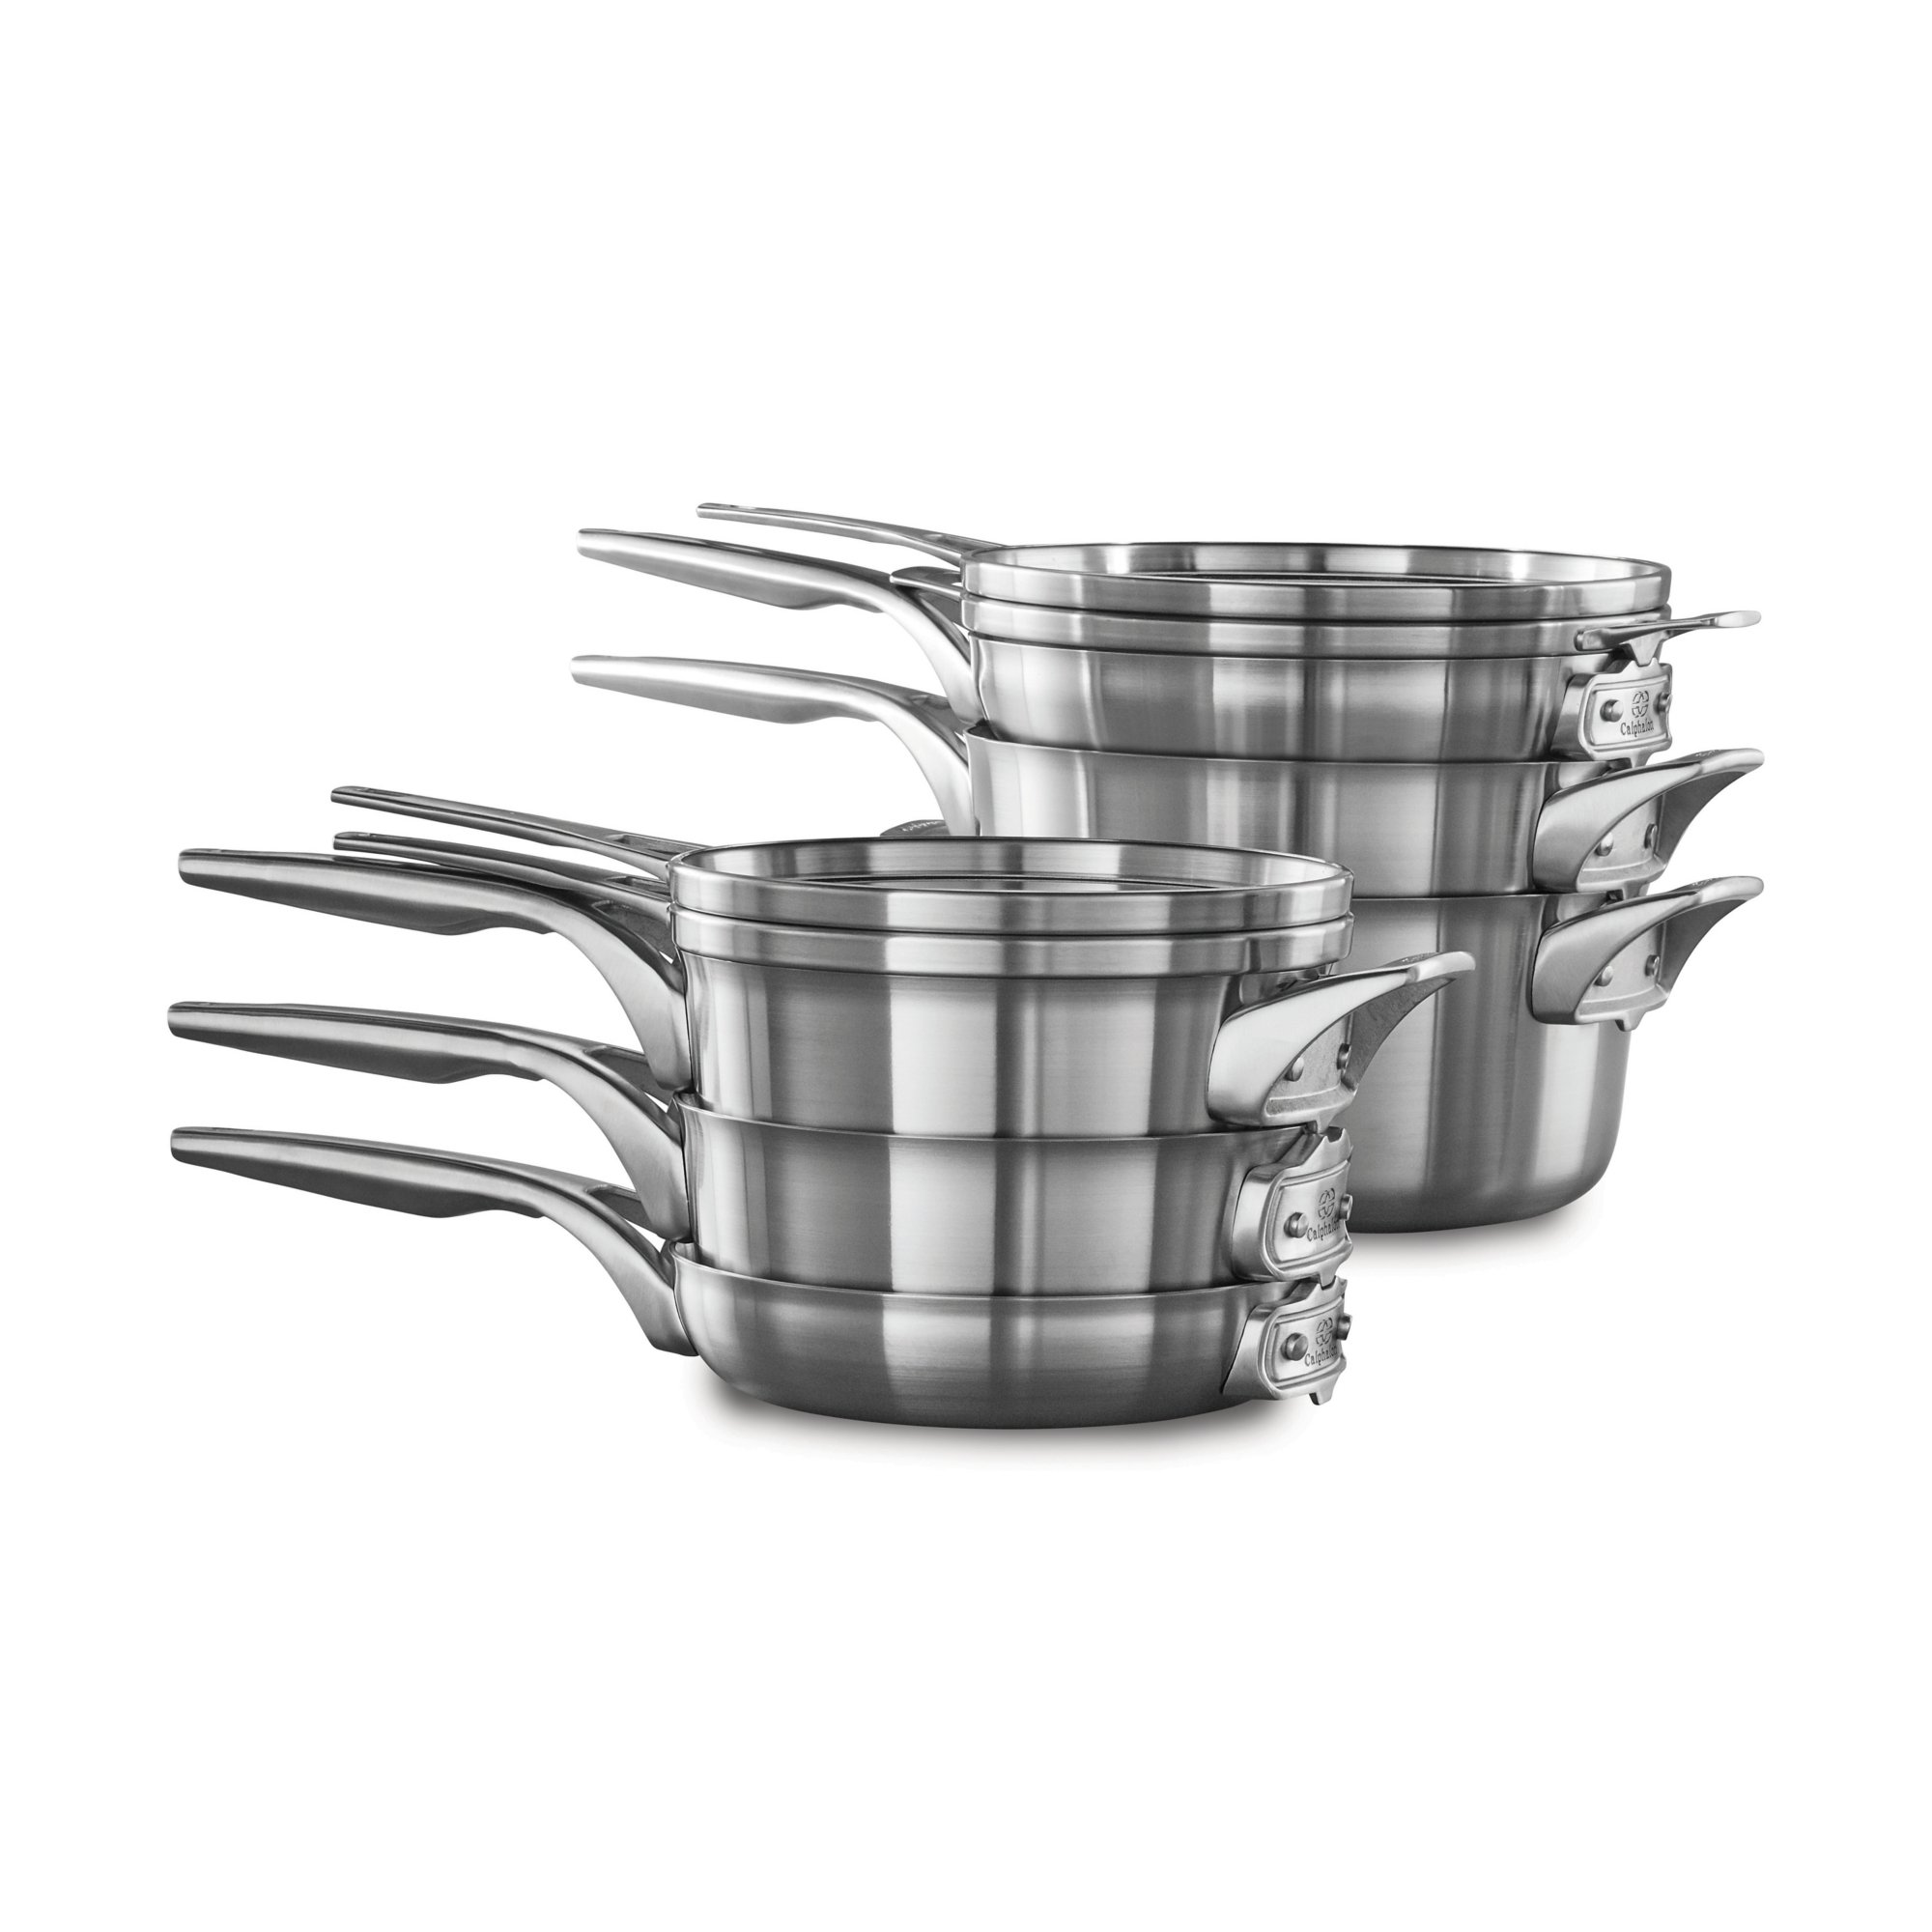 Calphalon Premier? Space Saving Stainless Steel 10-Piece Cookware Set